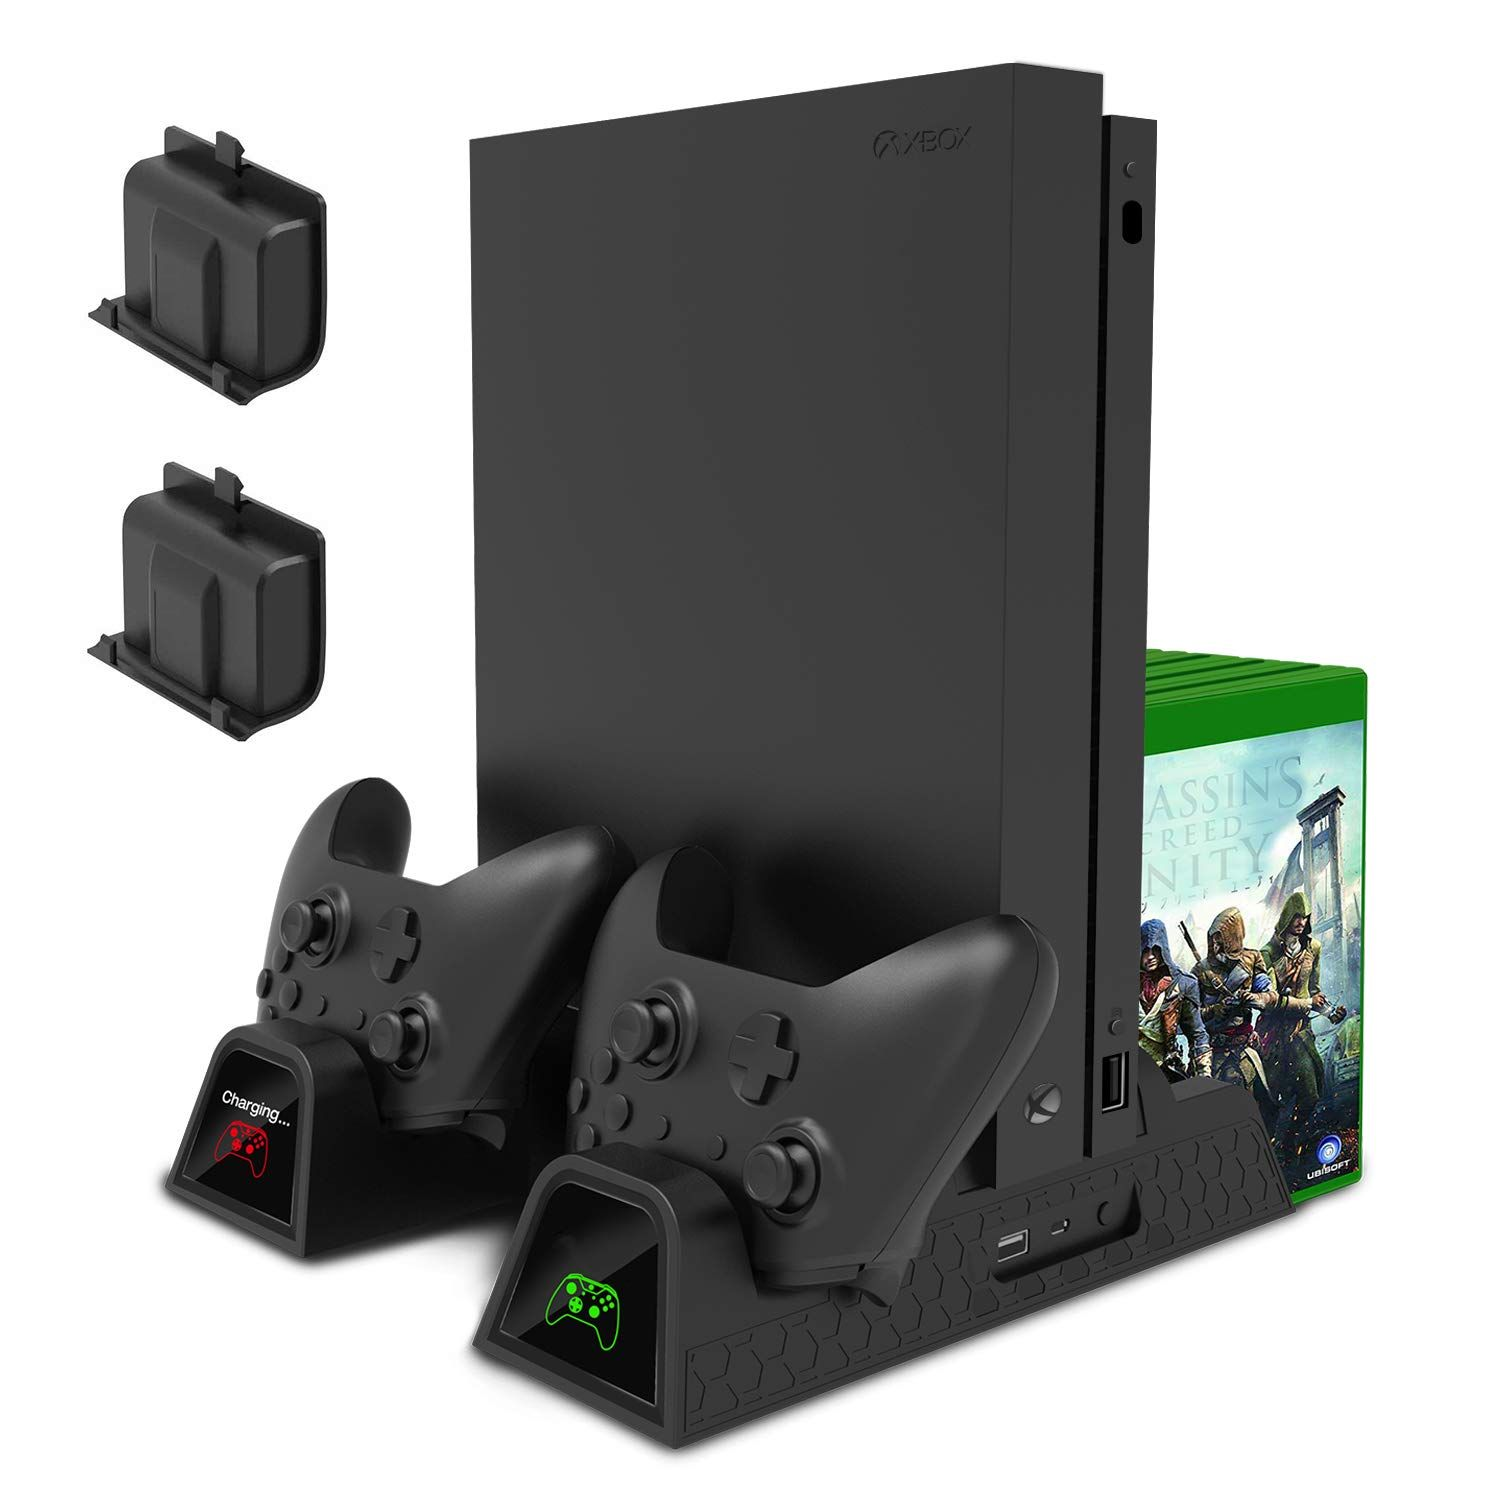 Charging Stand For Xbox One Xbox One S Xbox One X Console And